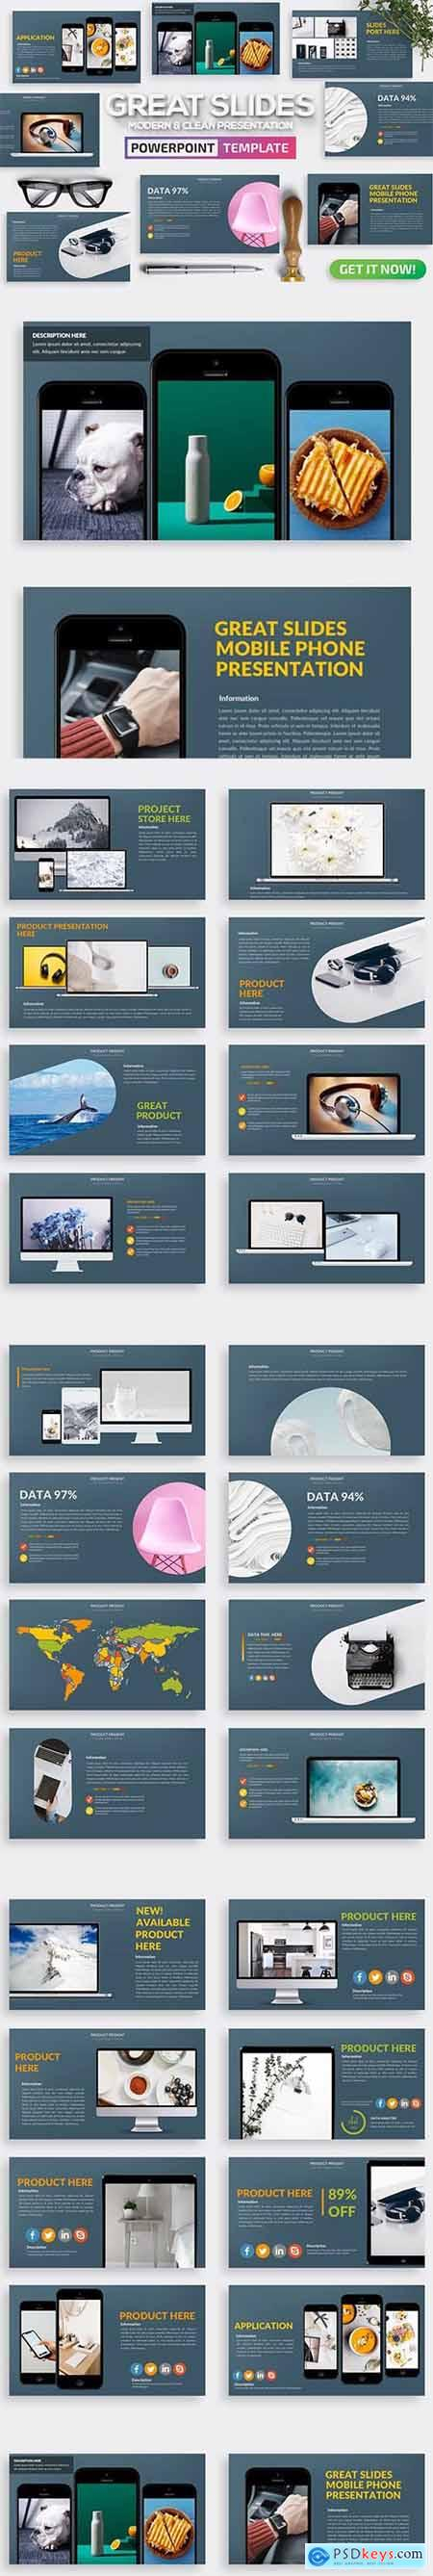 Great Slides Powerpoint Template